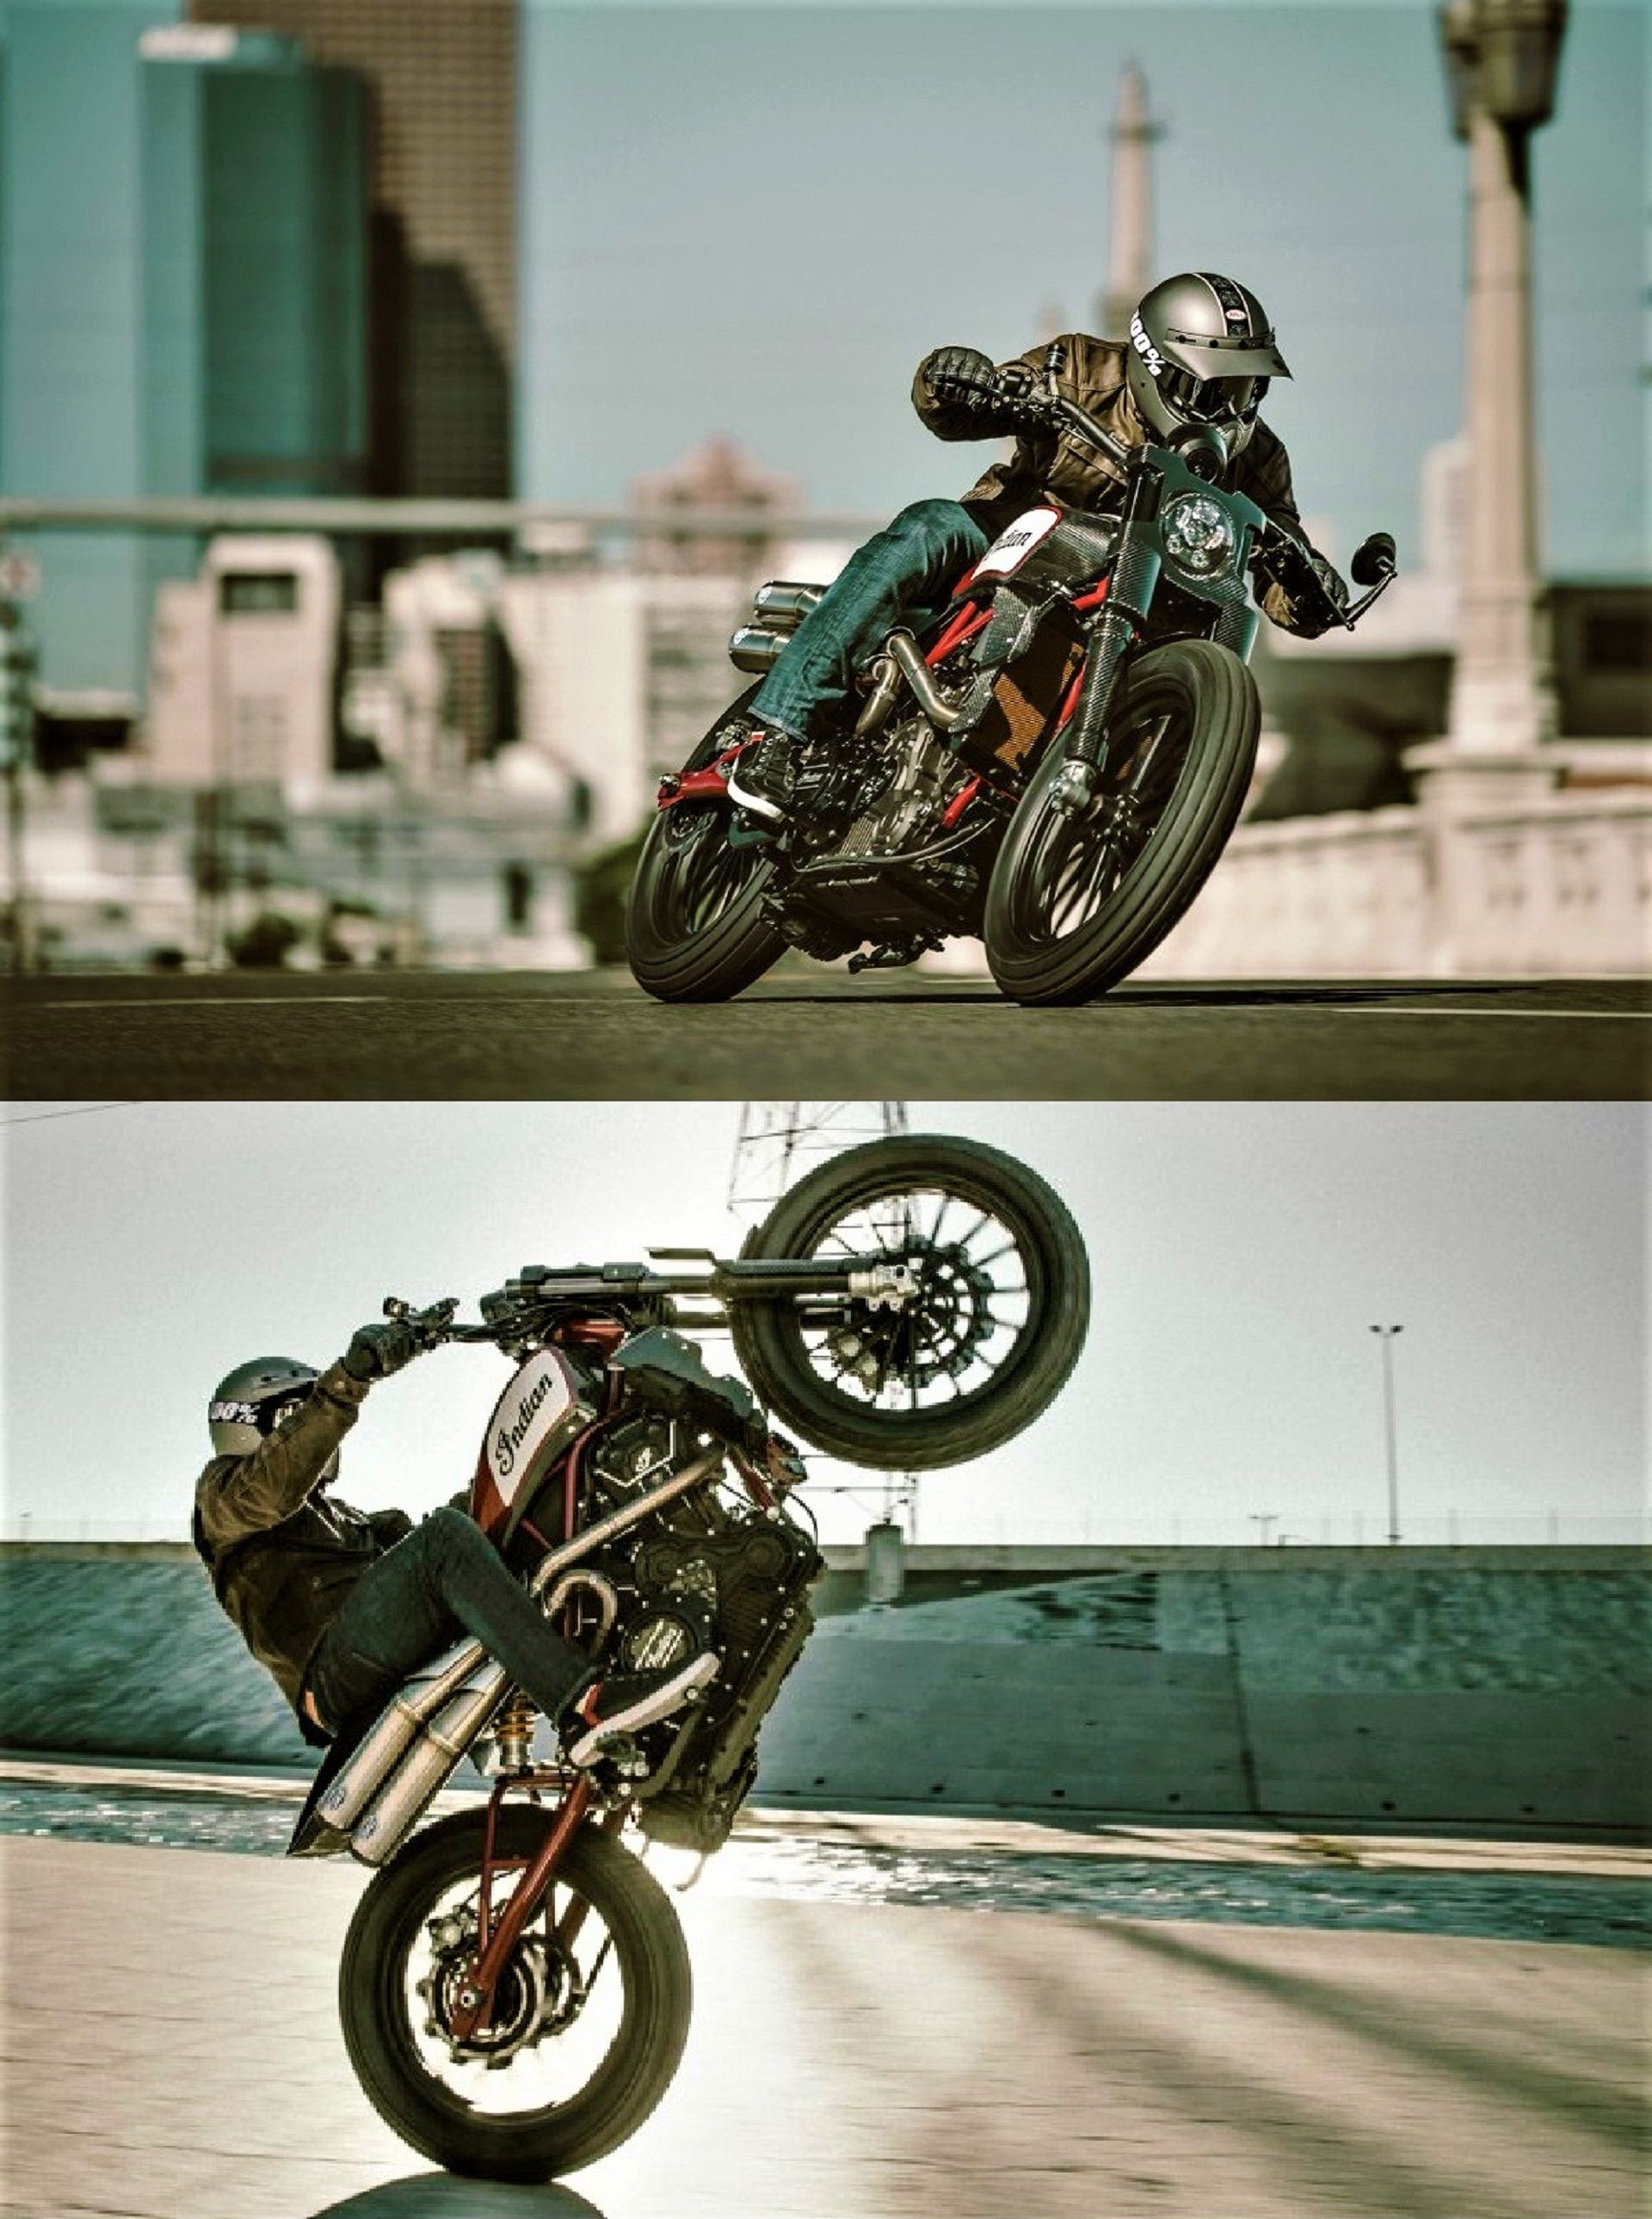 Pin by Bobby Perry on Motorcycles | Motorcycle, Indian scout